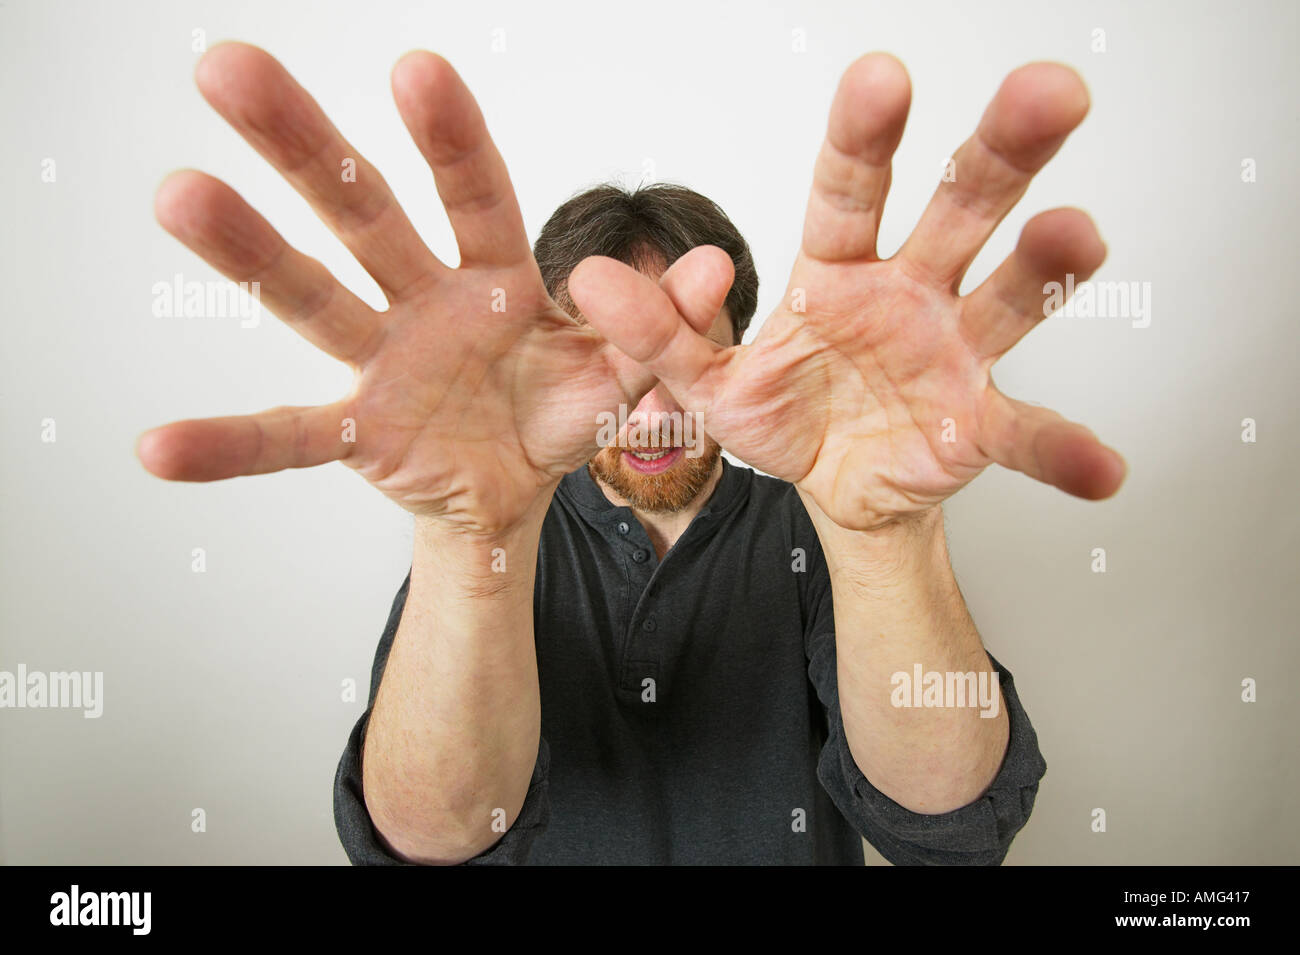 mans hands towards coming to strangle - Stock Image